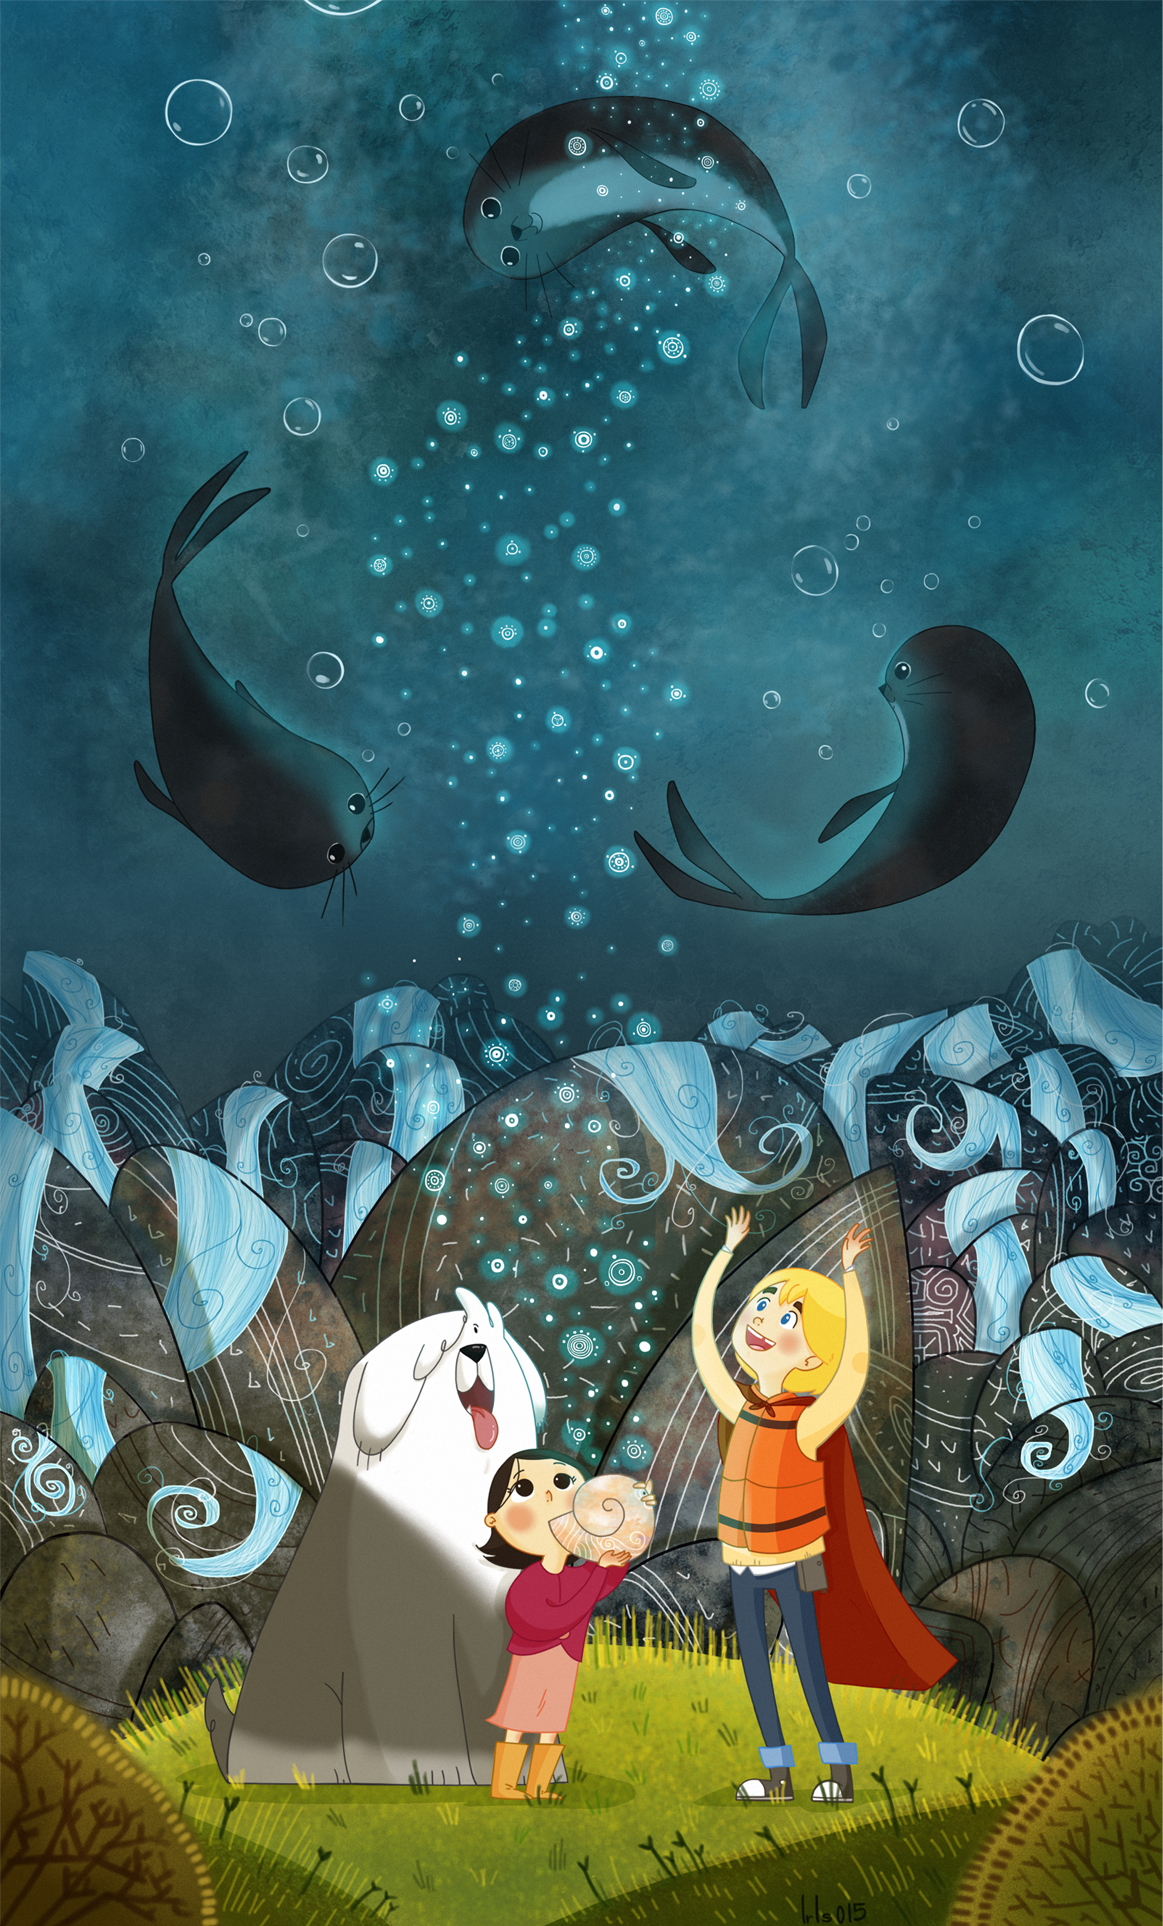 Fanart. songofthesea The secret of kells, Animated movies